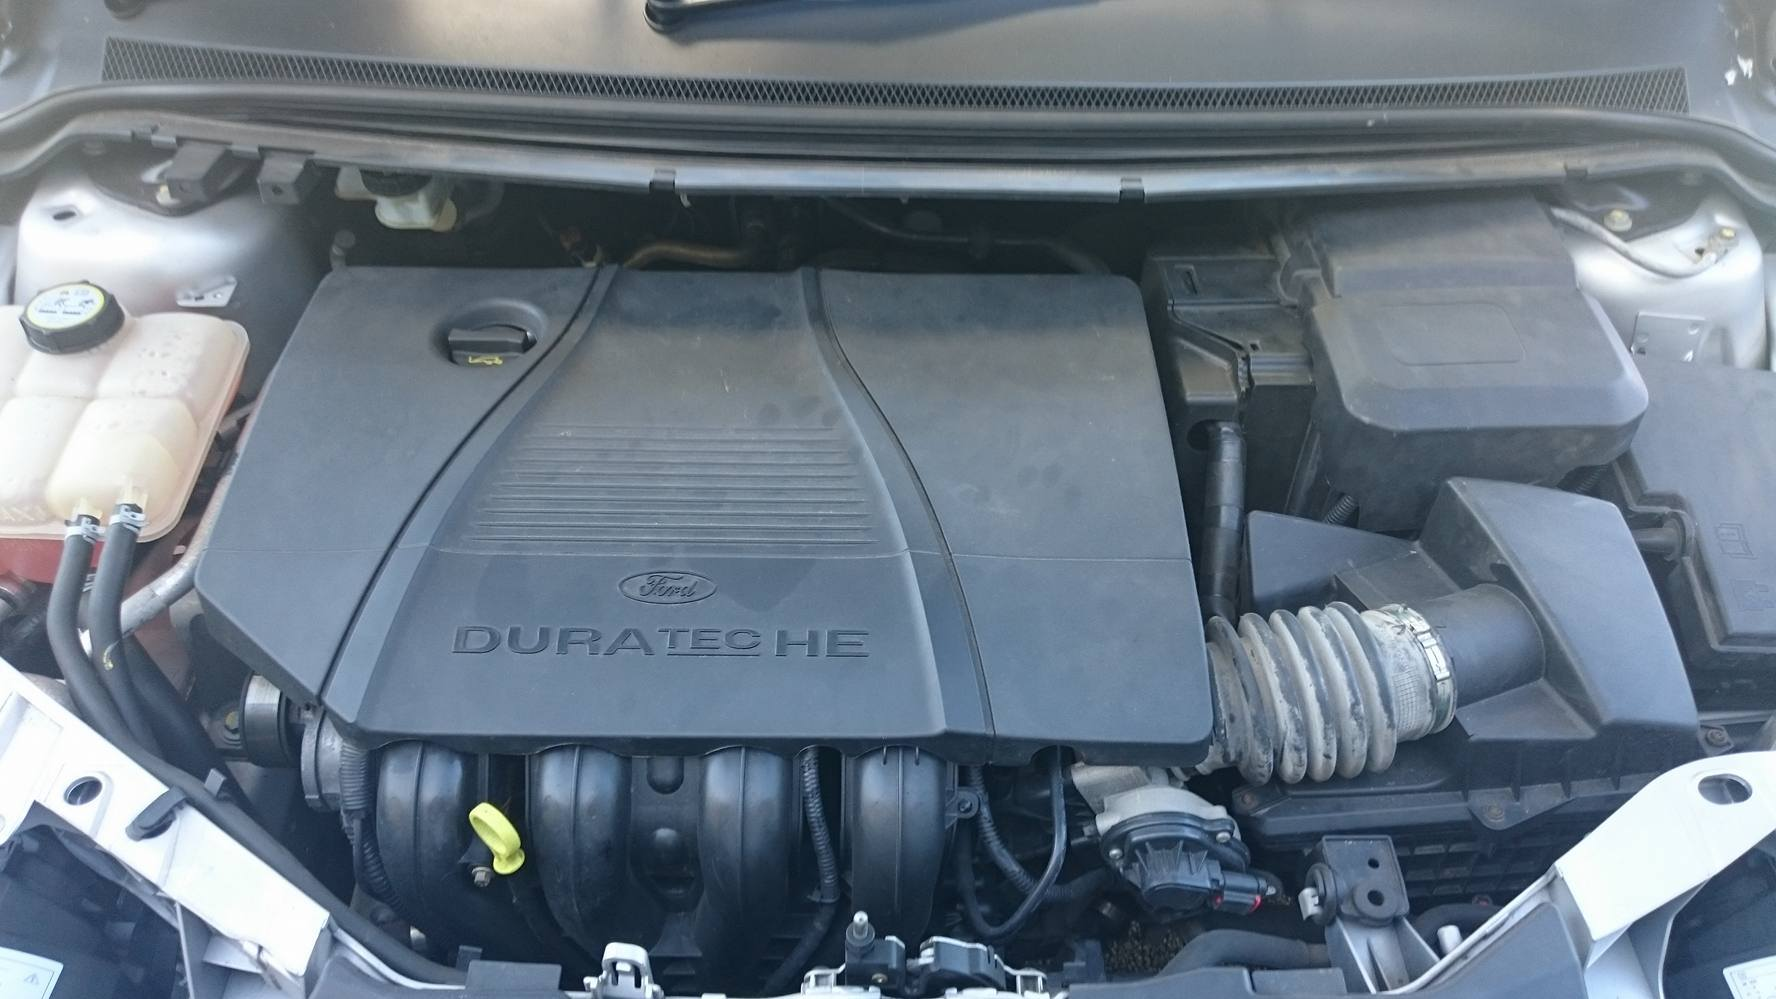 cold air intake placement-focus-bay.jpg